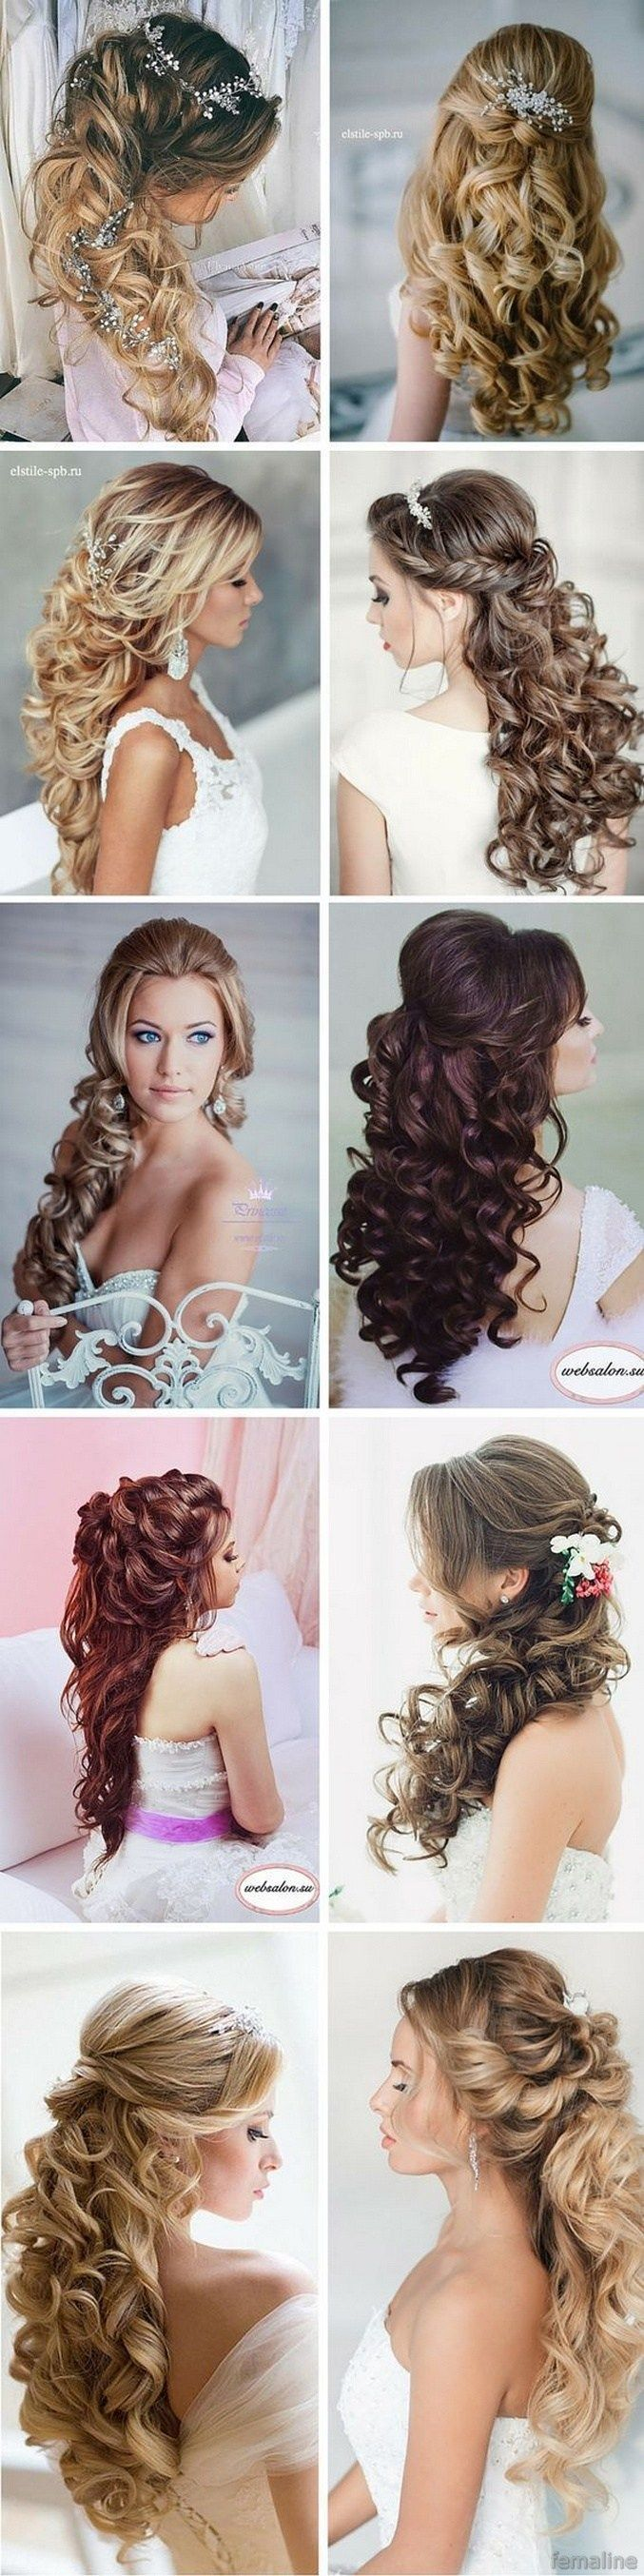 2017 06 homecoming hairstyles long hair - Elegant Bridal Hairstyles For Long Hair 96